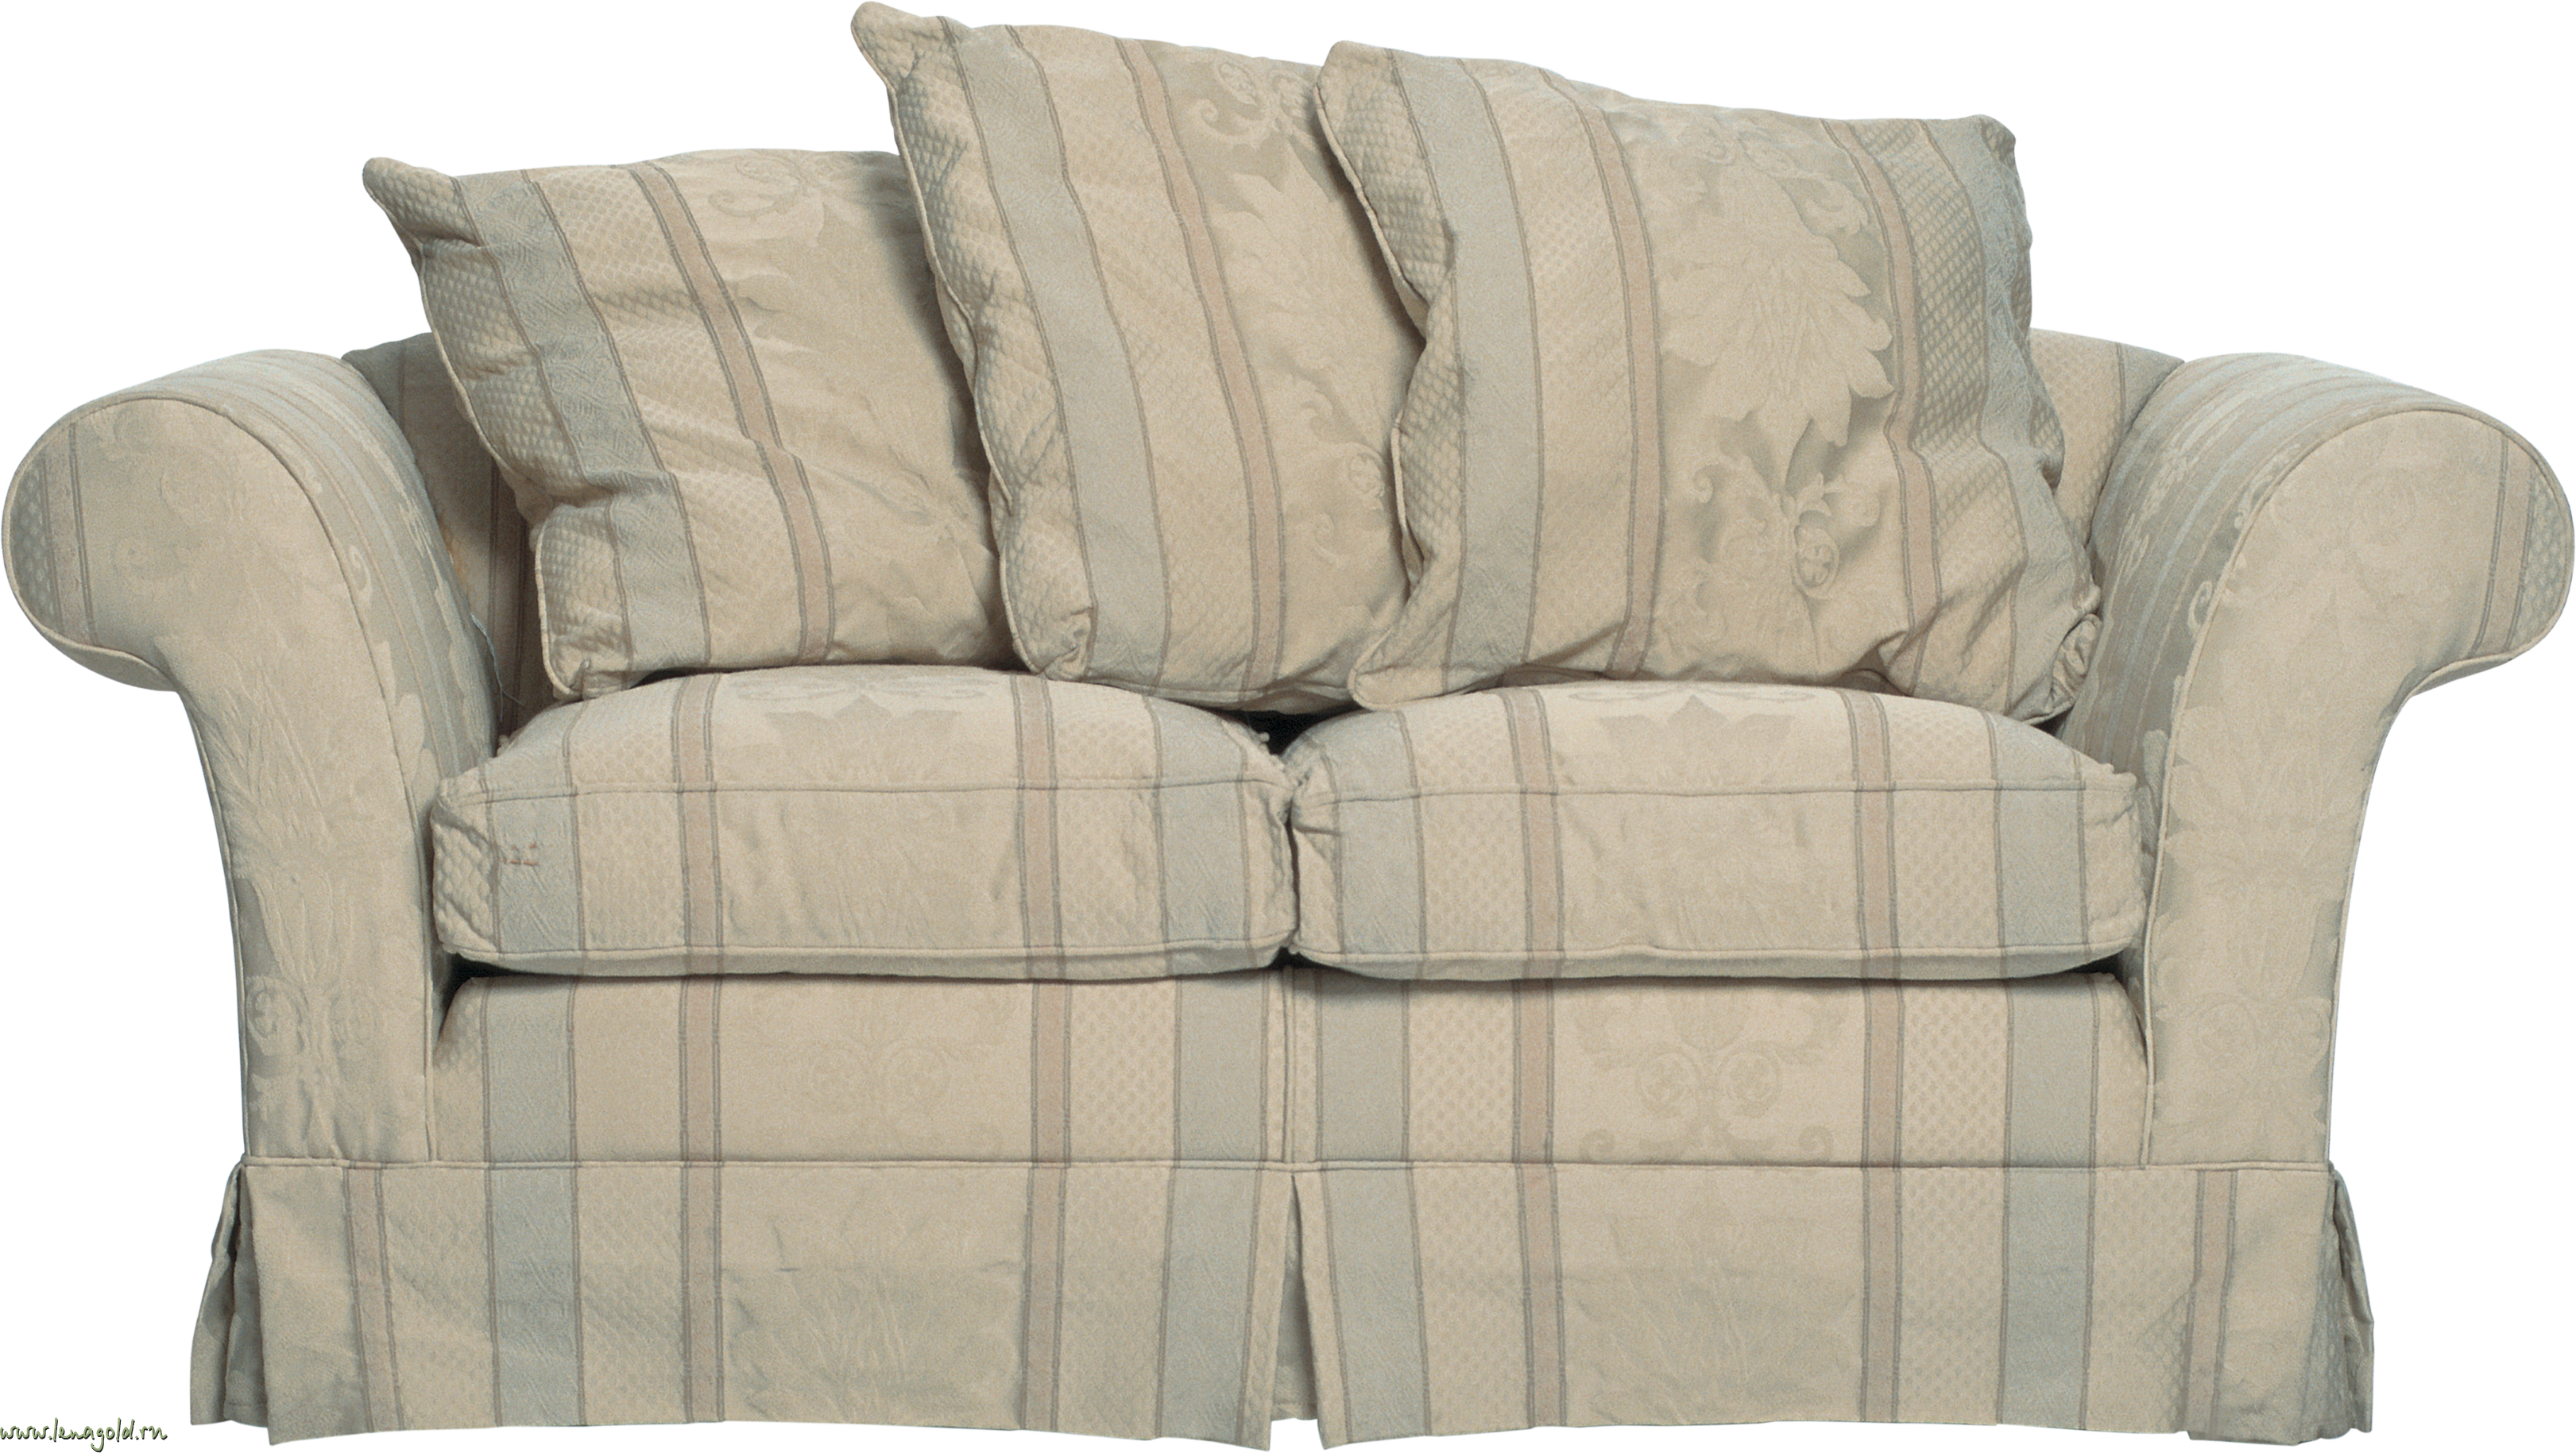 Queen clipart gambar. Sofa png images free